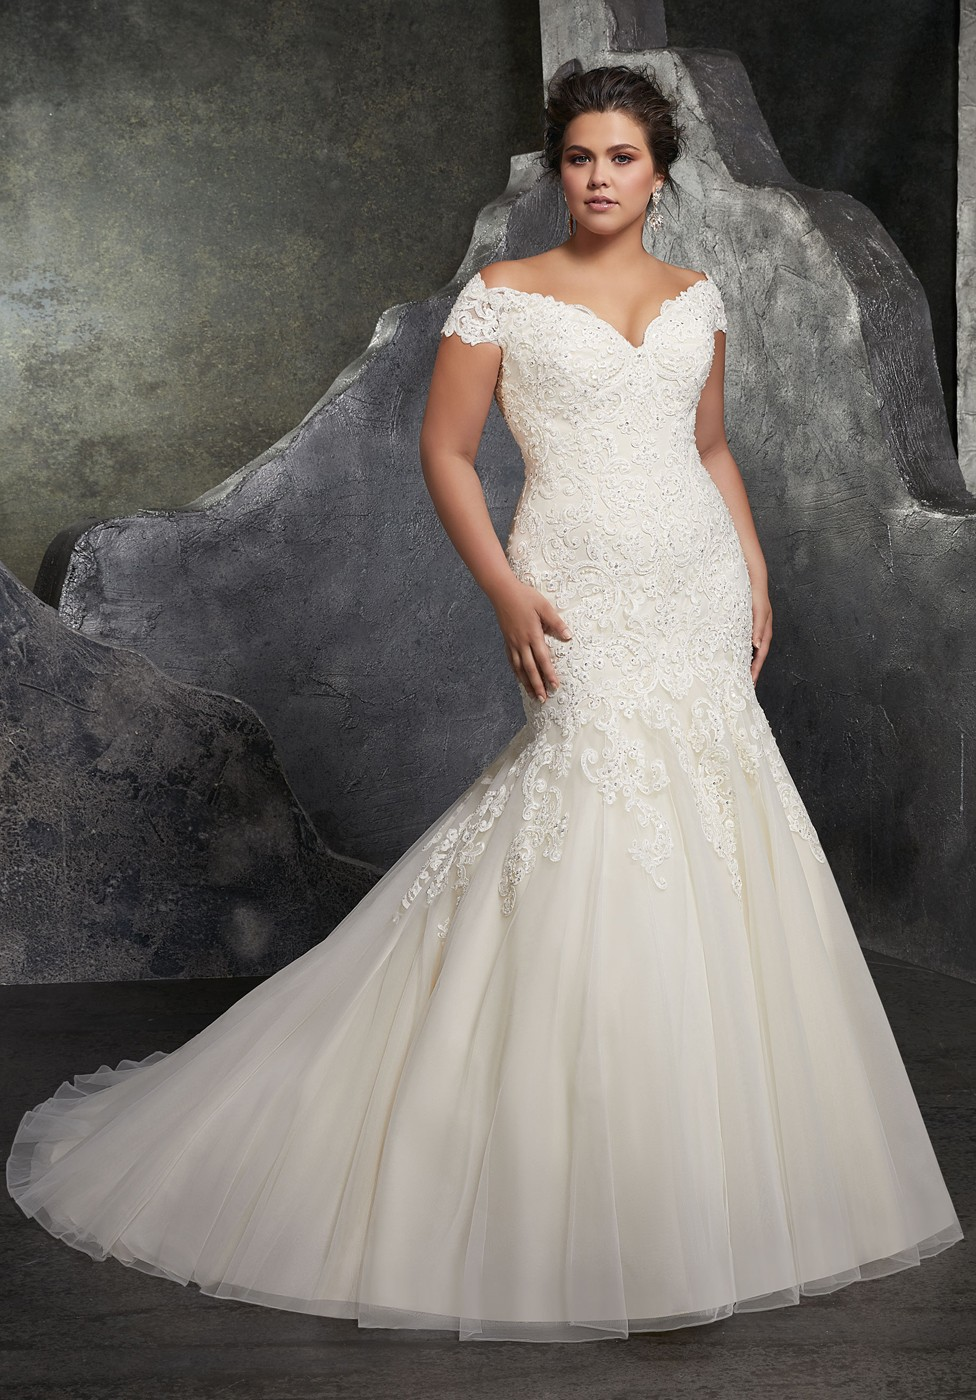 Mori Lee Kariana Style 3234 Dress - MadameBridal.com